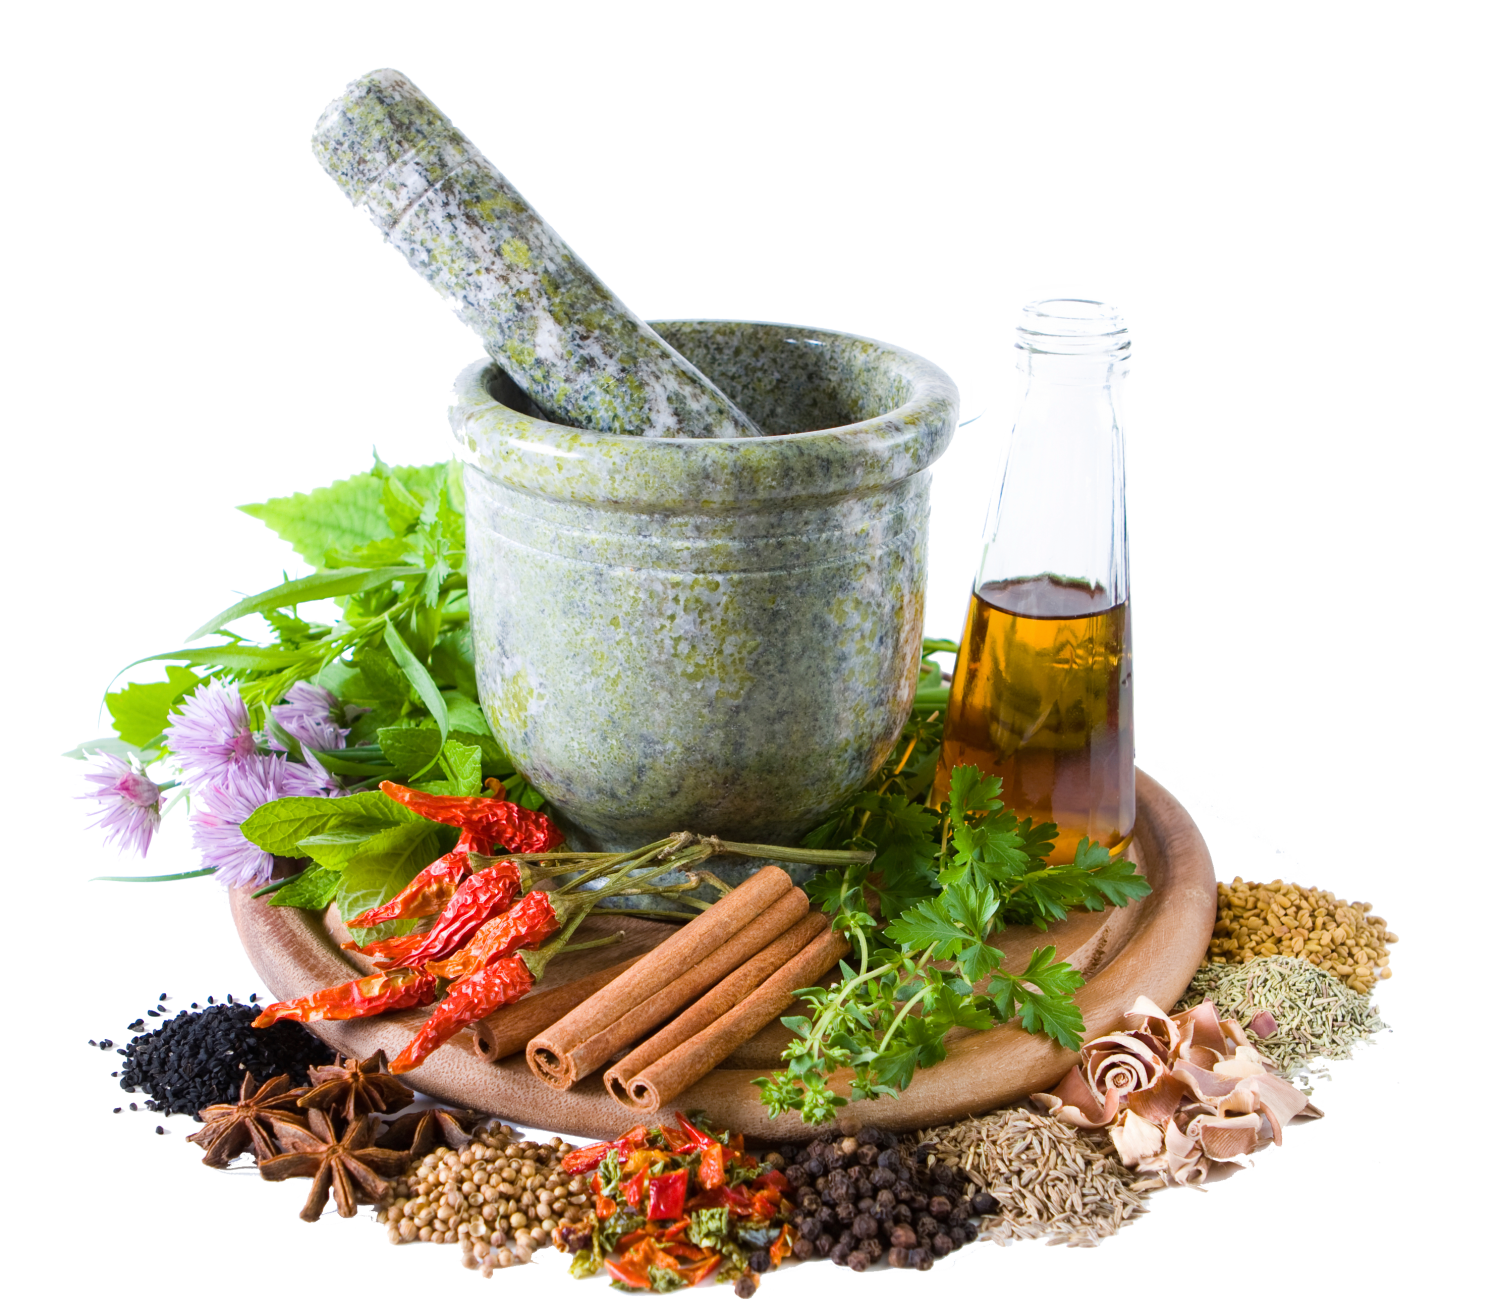 collection of various herbs and a pestle and mortar